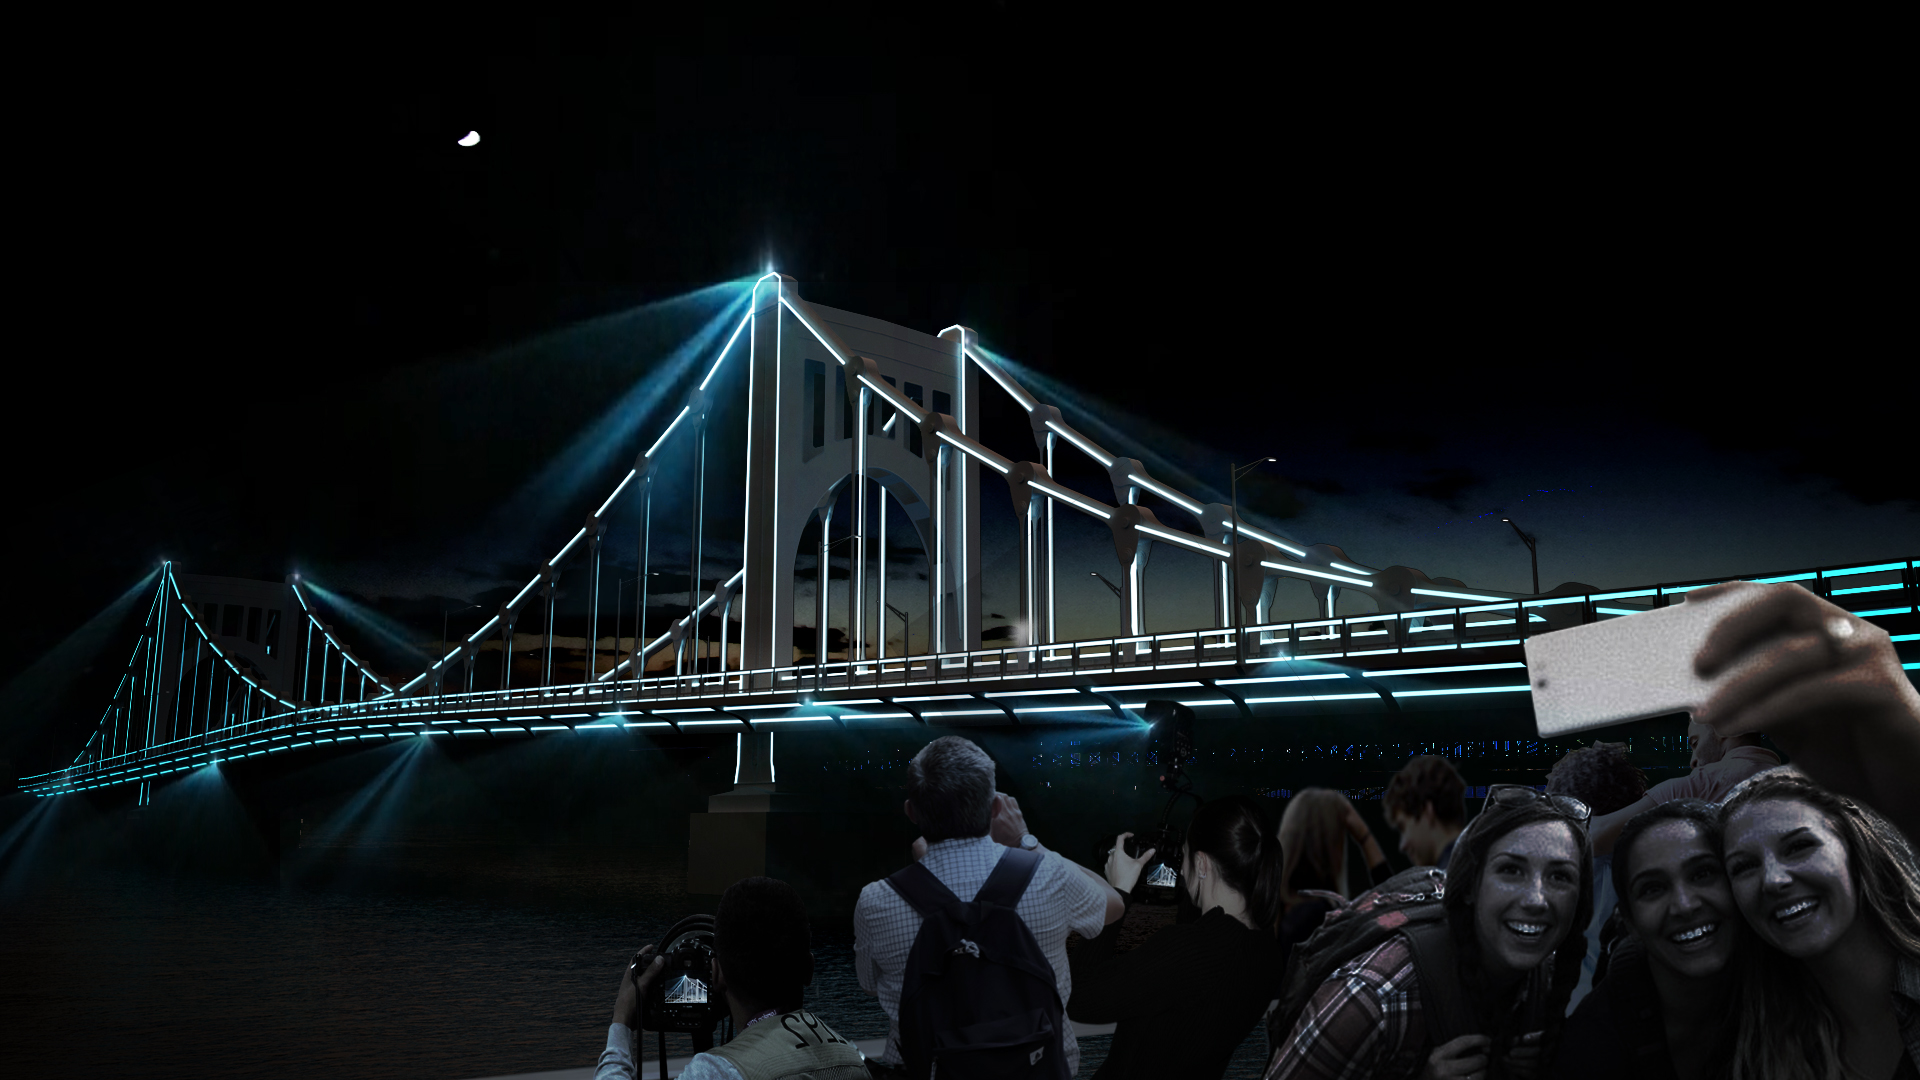 Tron-Bridge_04.jpg